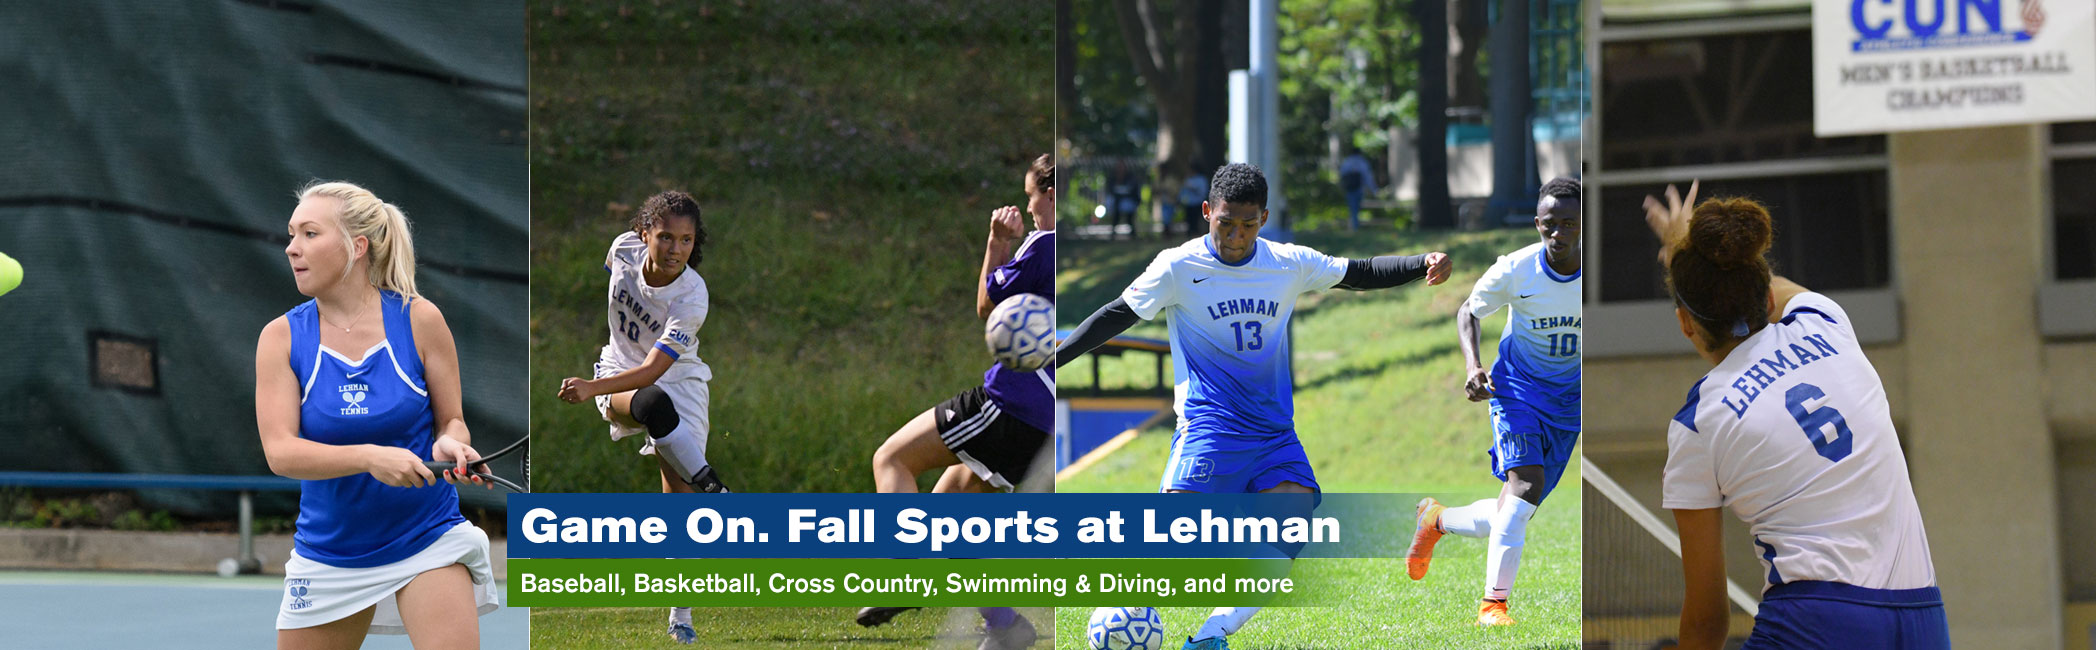 Lehman College Fall Sports Banner Image